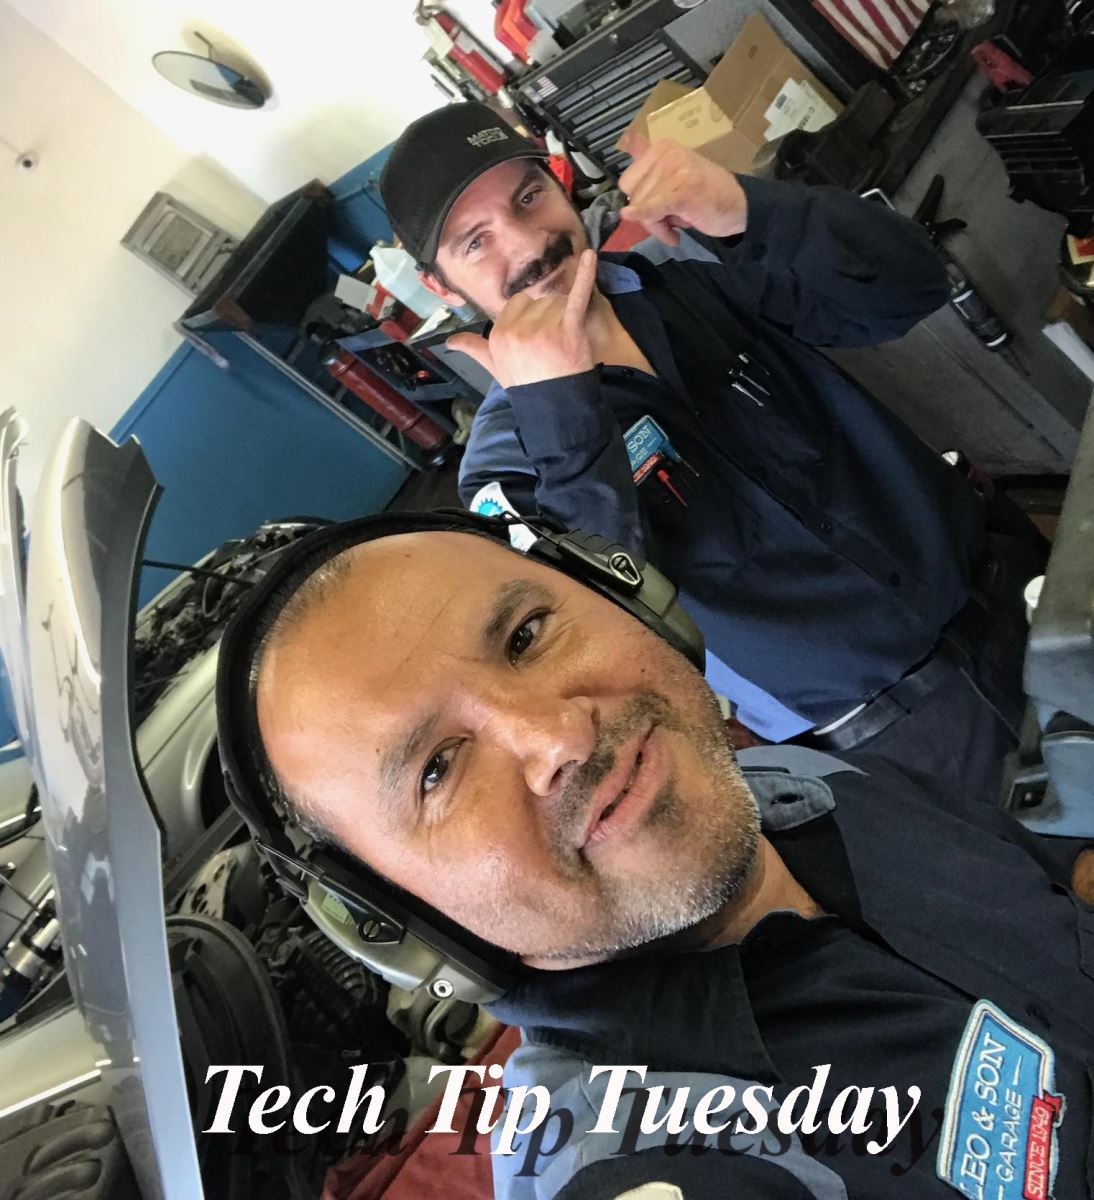 Tech Tip Tuesday - January 30